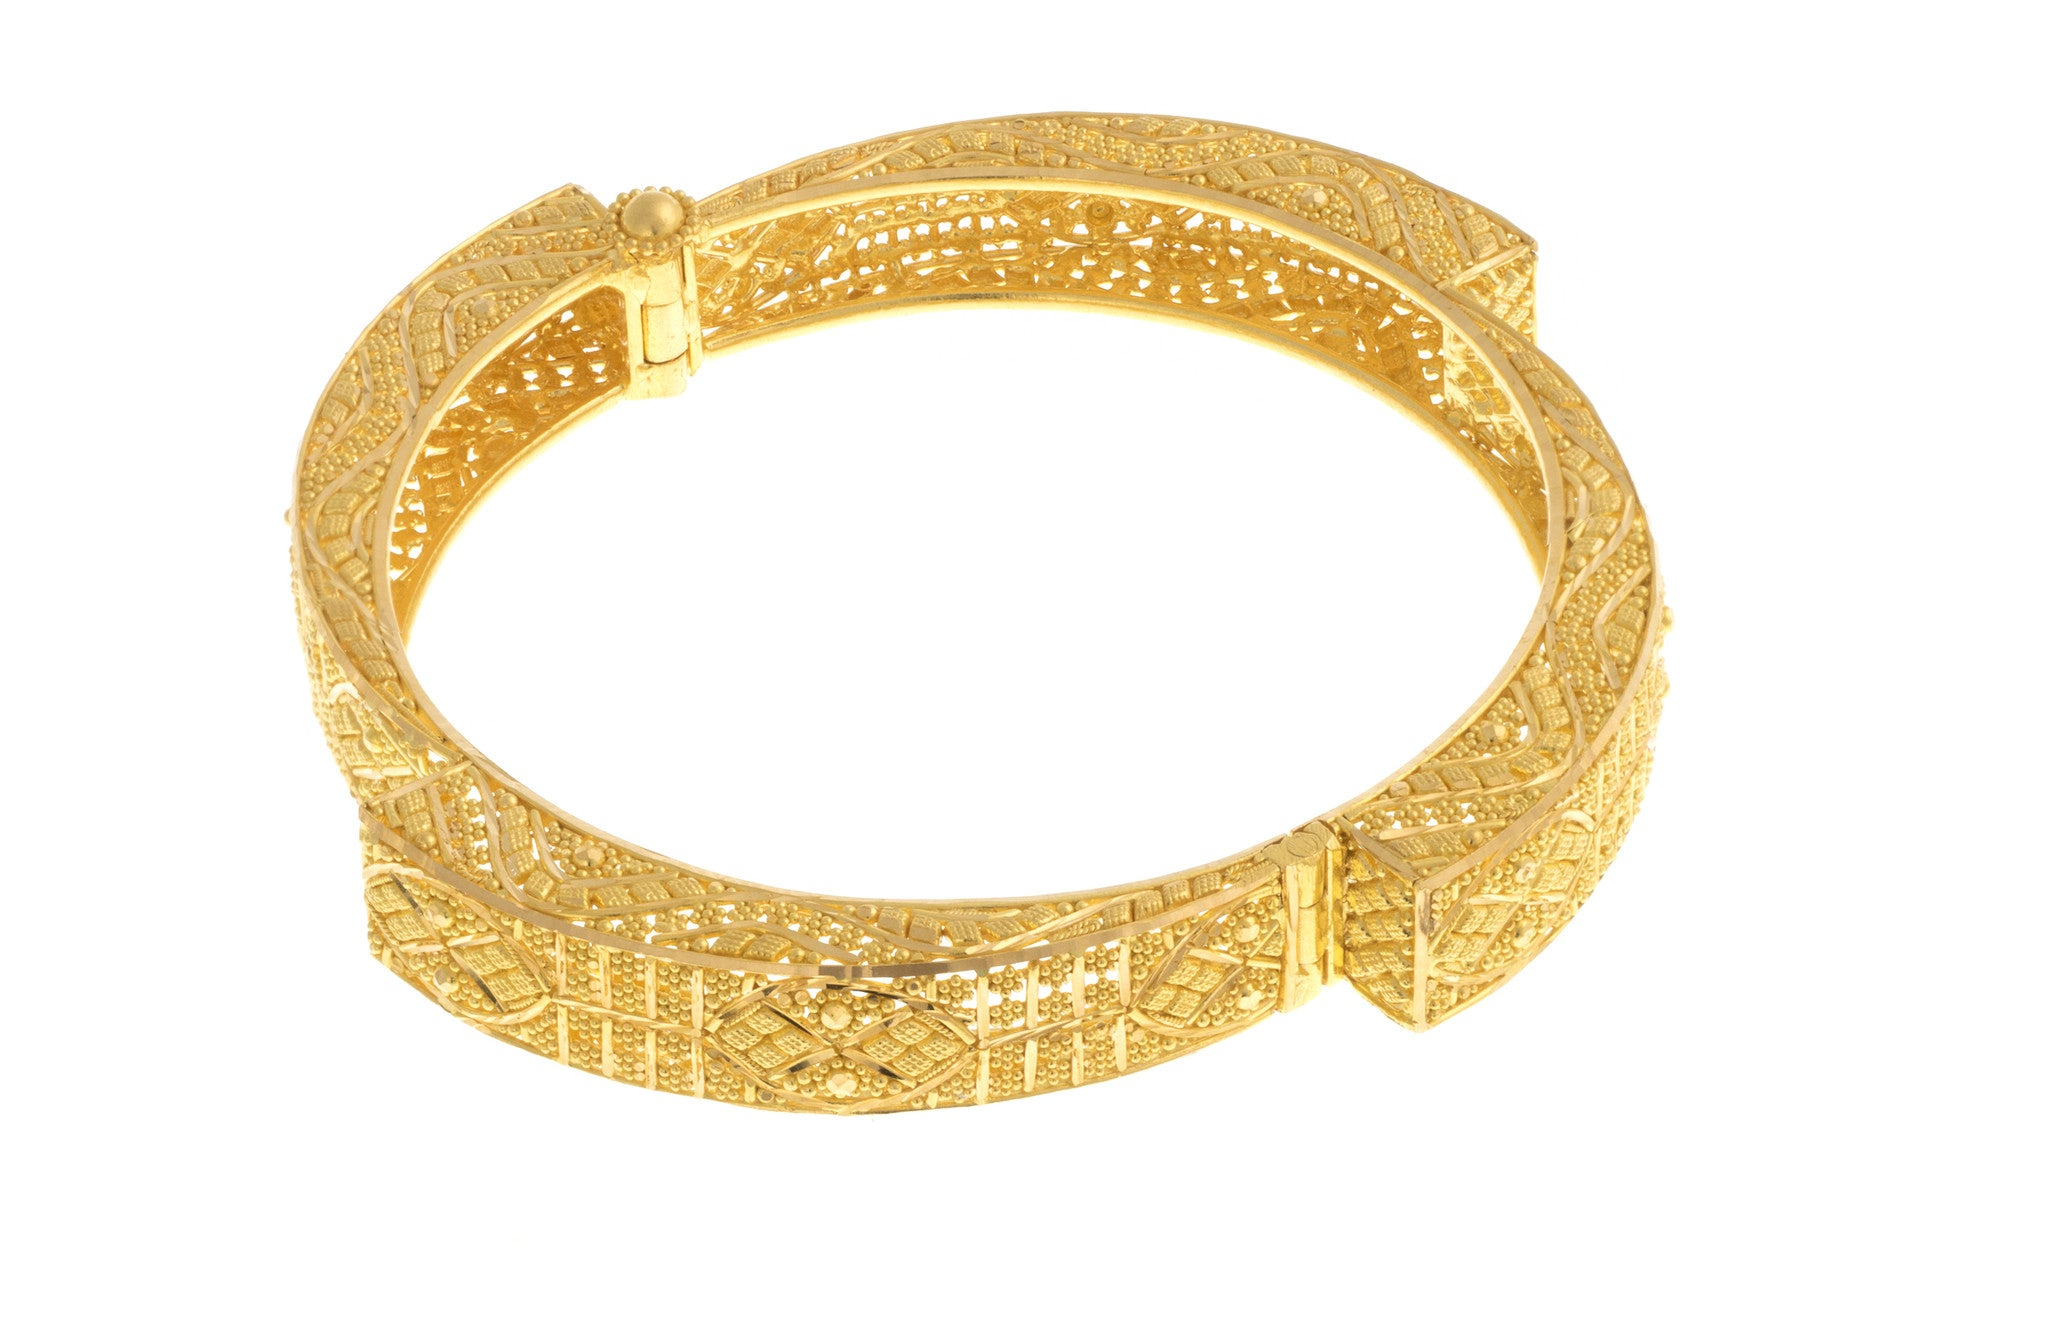 Filigree 22ct Yellow Gold Bangle, Minar Jewellers - 1